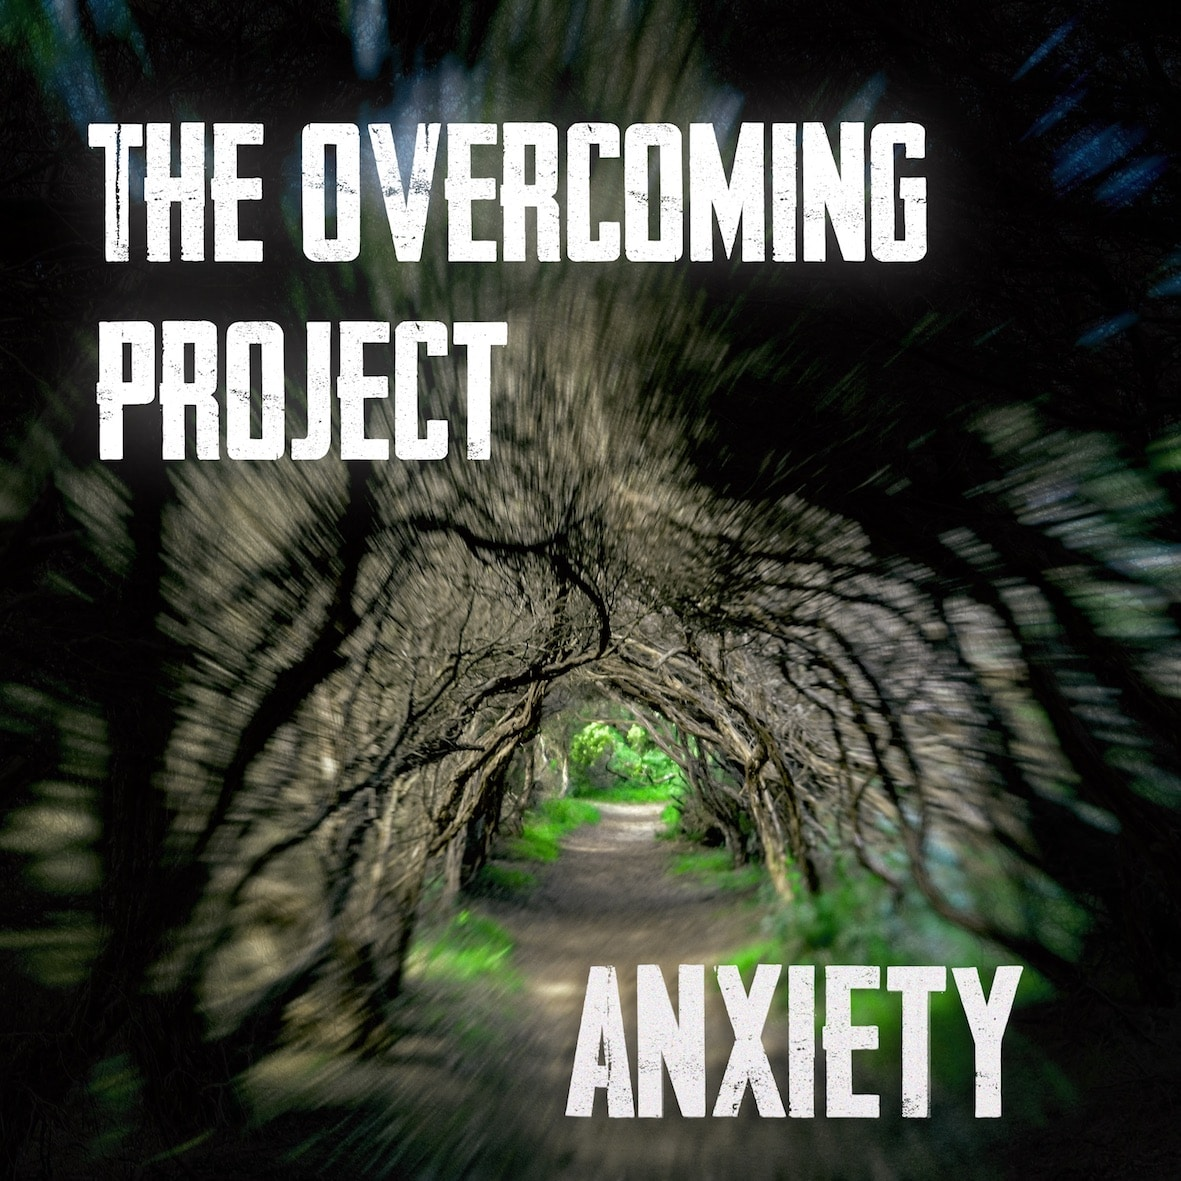 The Overcoming Project – Anxiety